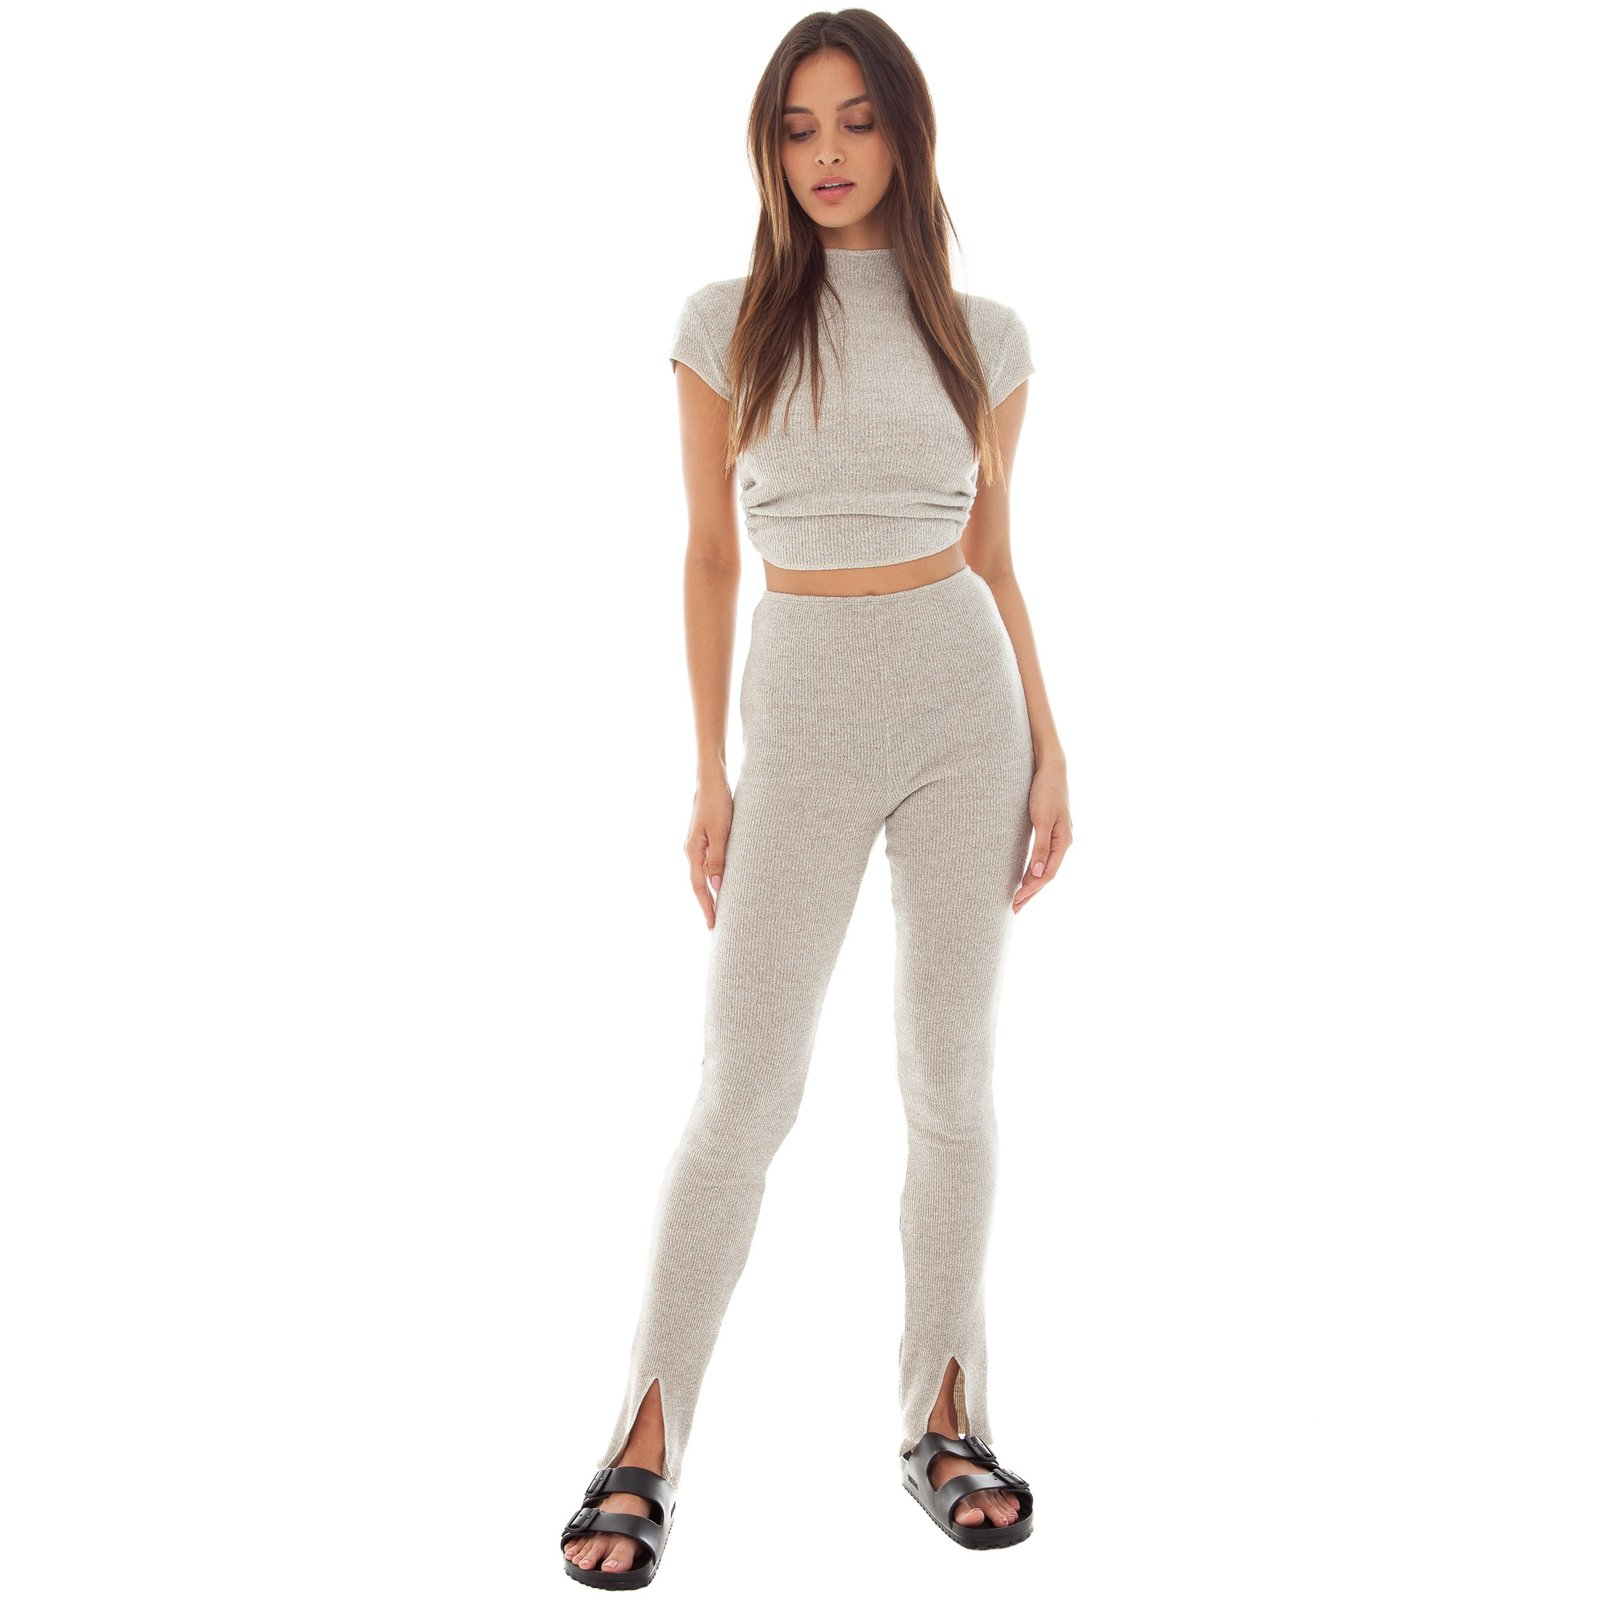 Sarei Legging by Are You Am I, available on areyouami.com for $140 Kendall Jenner Pants Exact Product